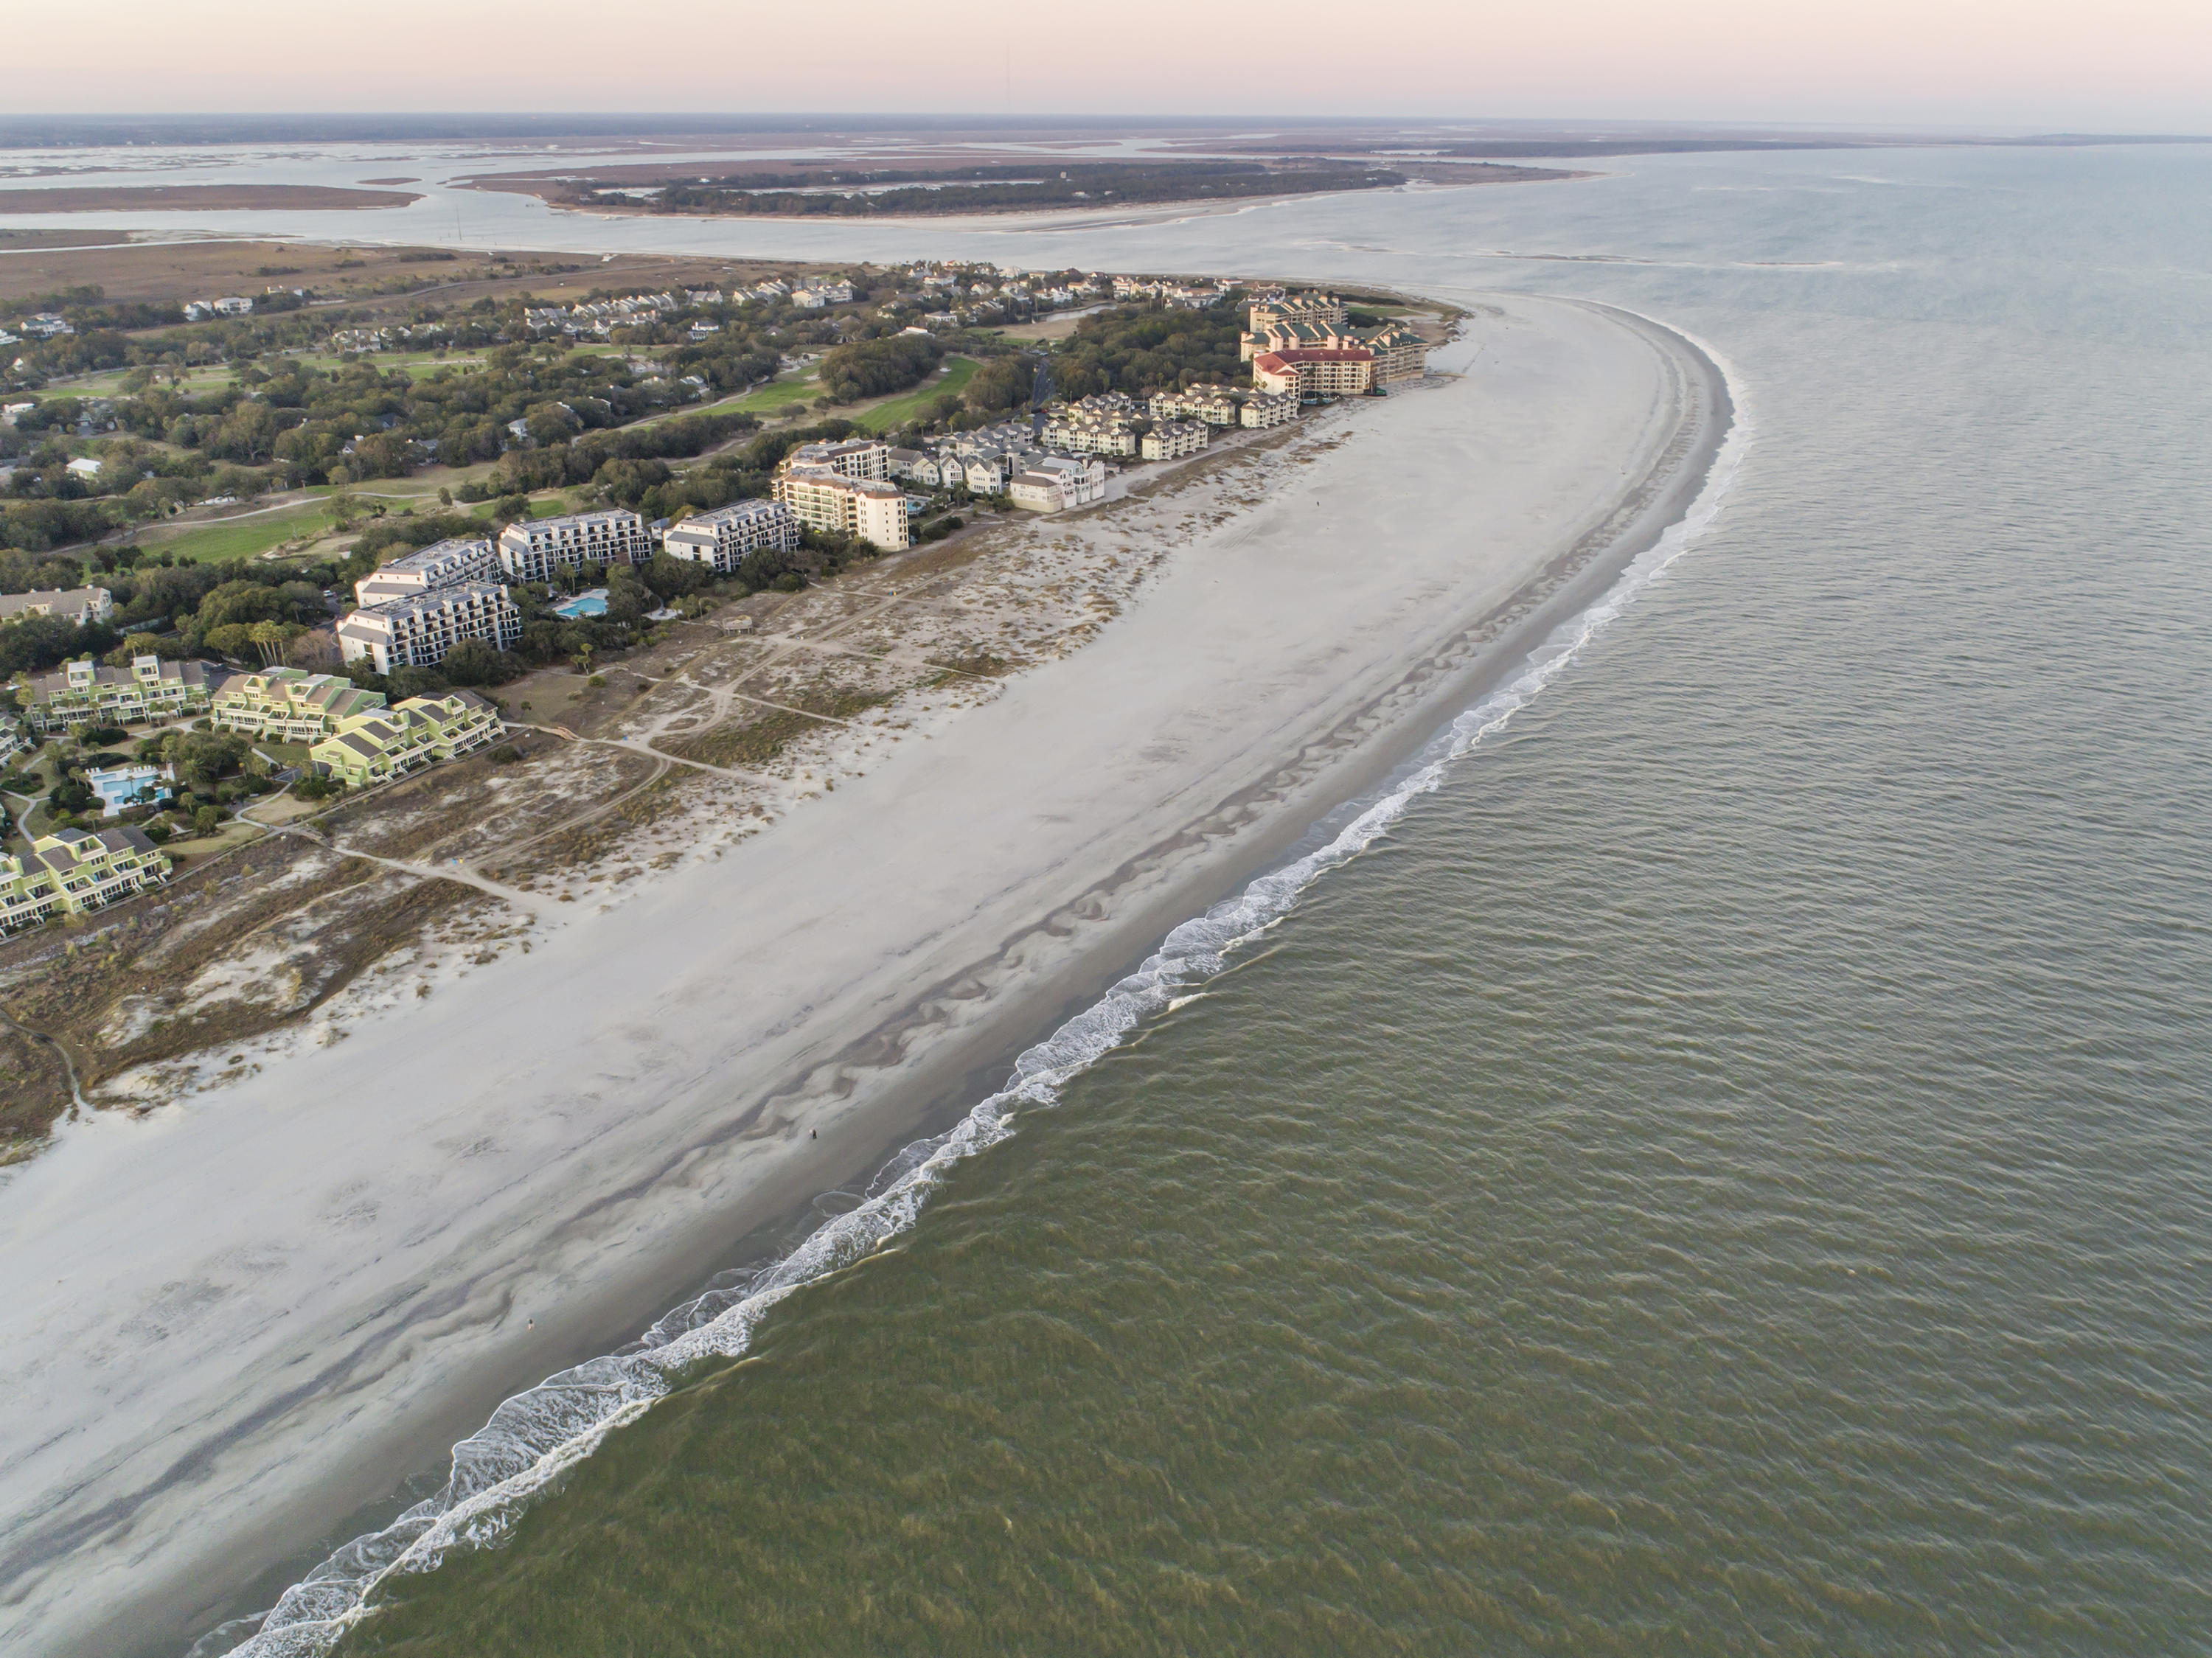 Beach Club Villas Homes For Sale - 51 Beach Club Villas, Isle of Palms, SC - 1